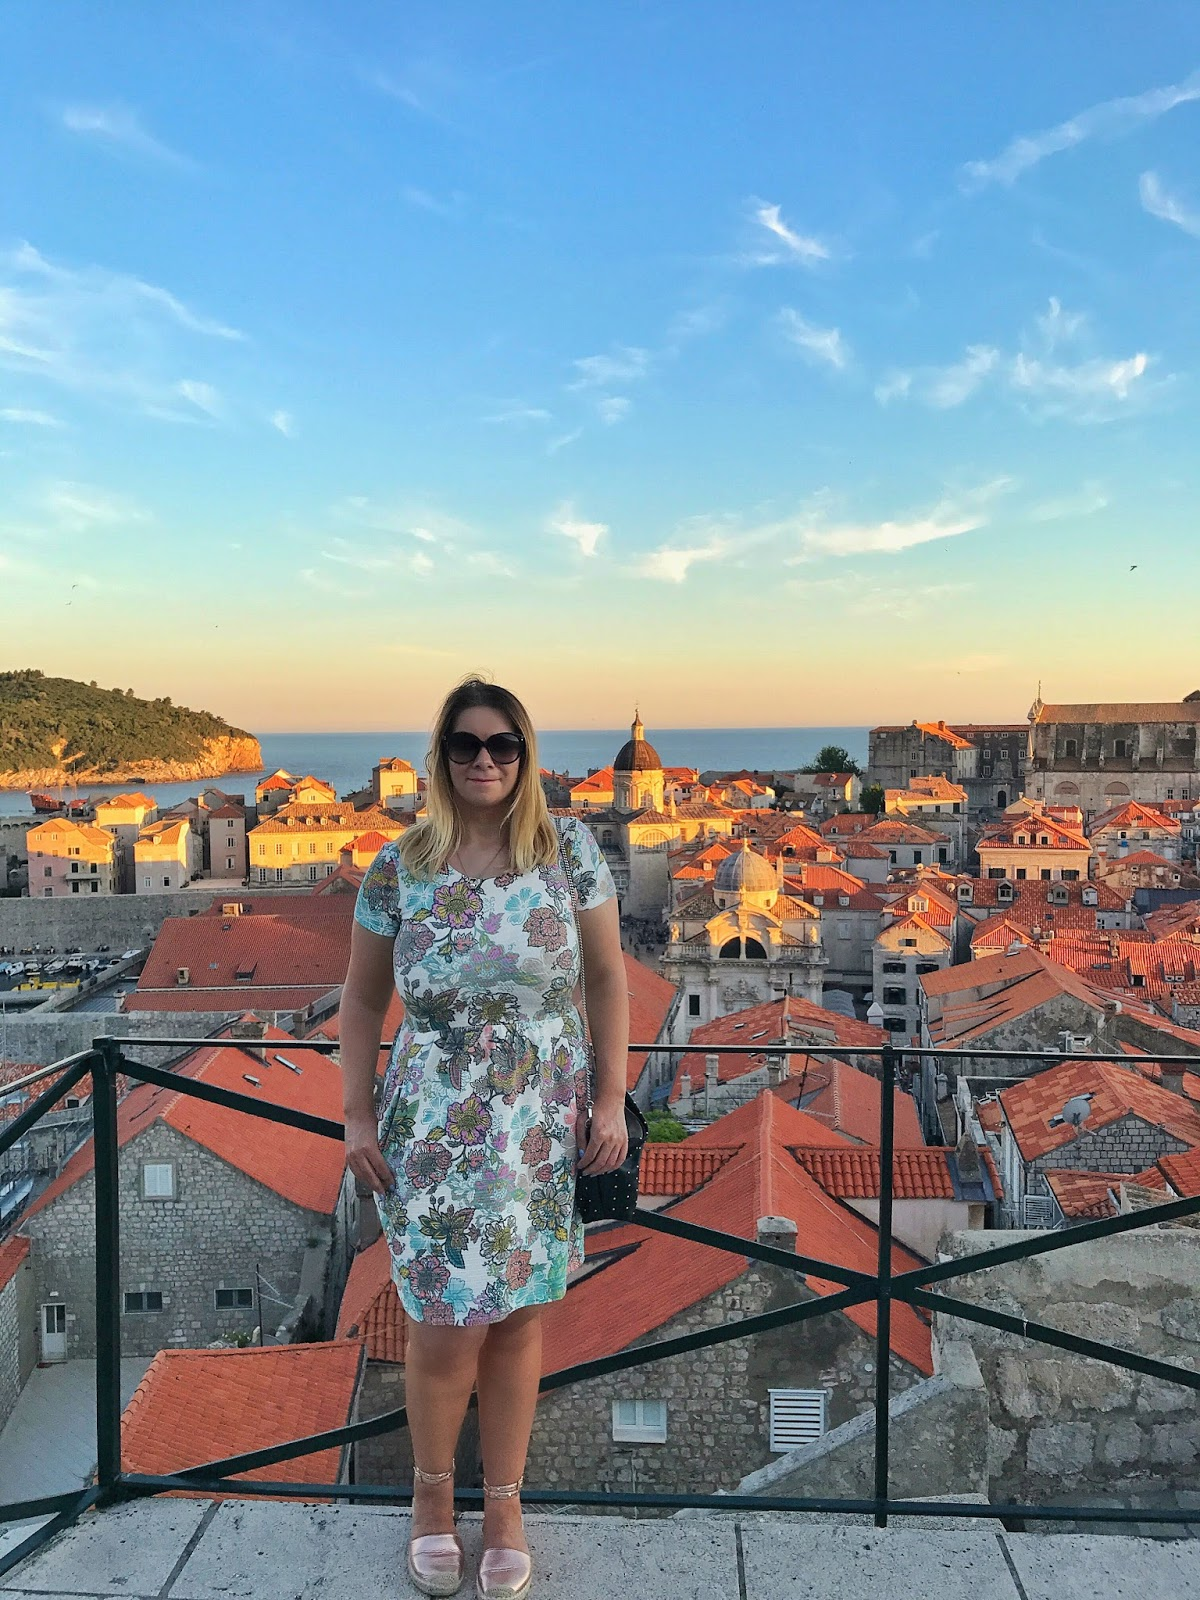 Me in the sunset backdrop of the old city Dubrovnik